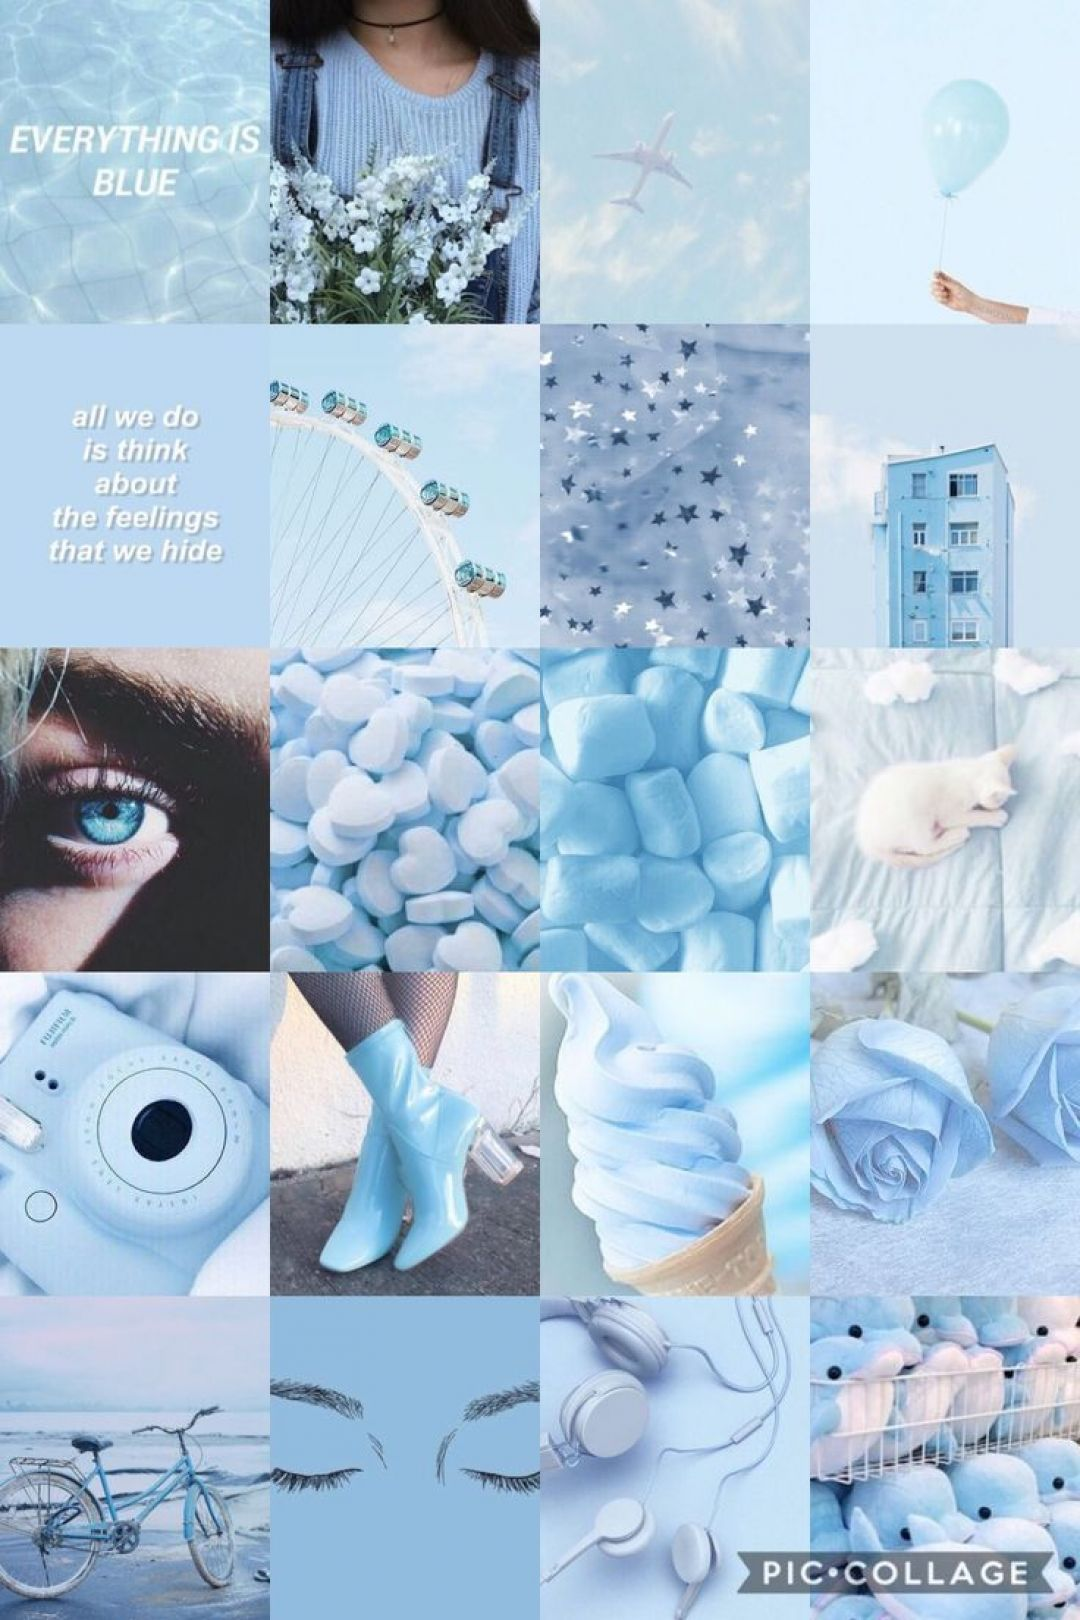 Blue Aesthetic Tumblr Android Iphone Desktop Hd Backgrounds Wallpapers 1080p 4k 1017 Blue Aesthetic Pastel Blue Aesthetic Tumblr Light Blue Aesthetic